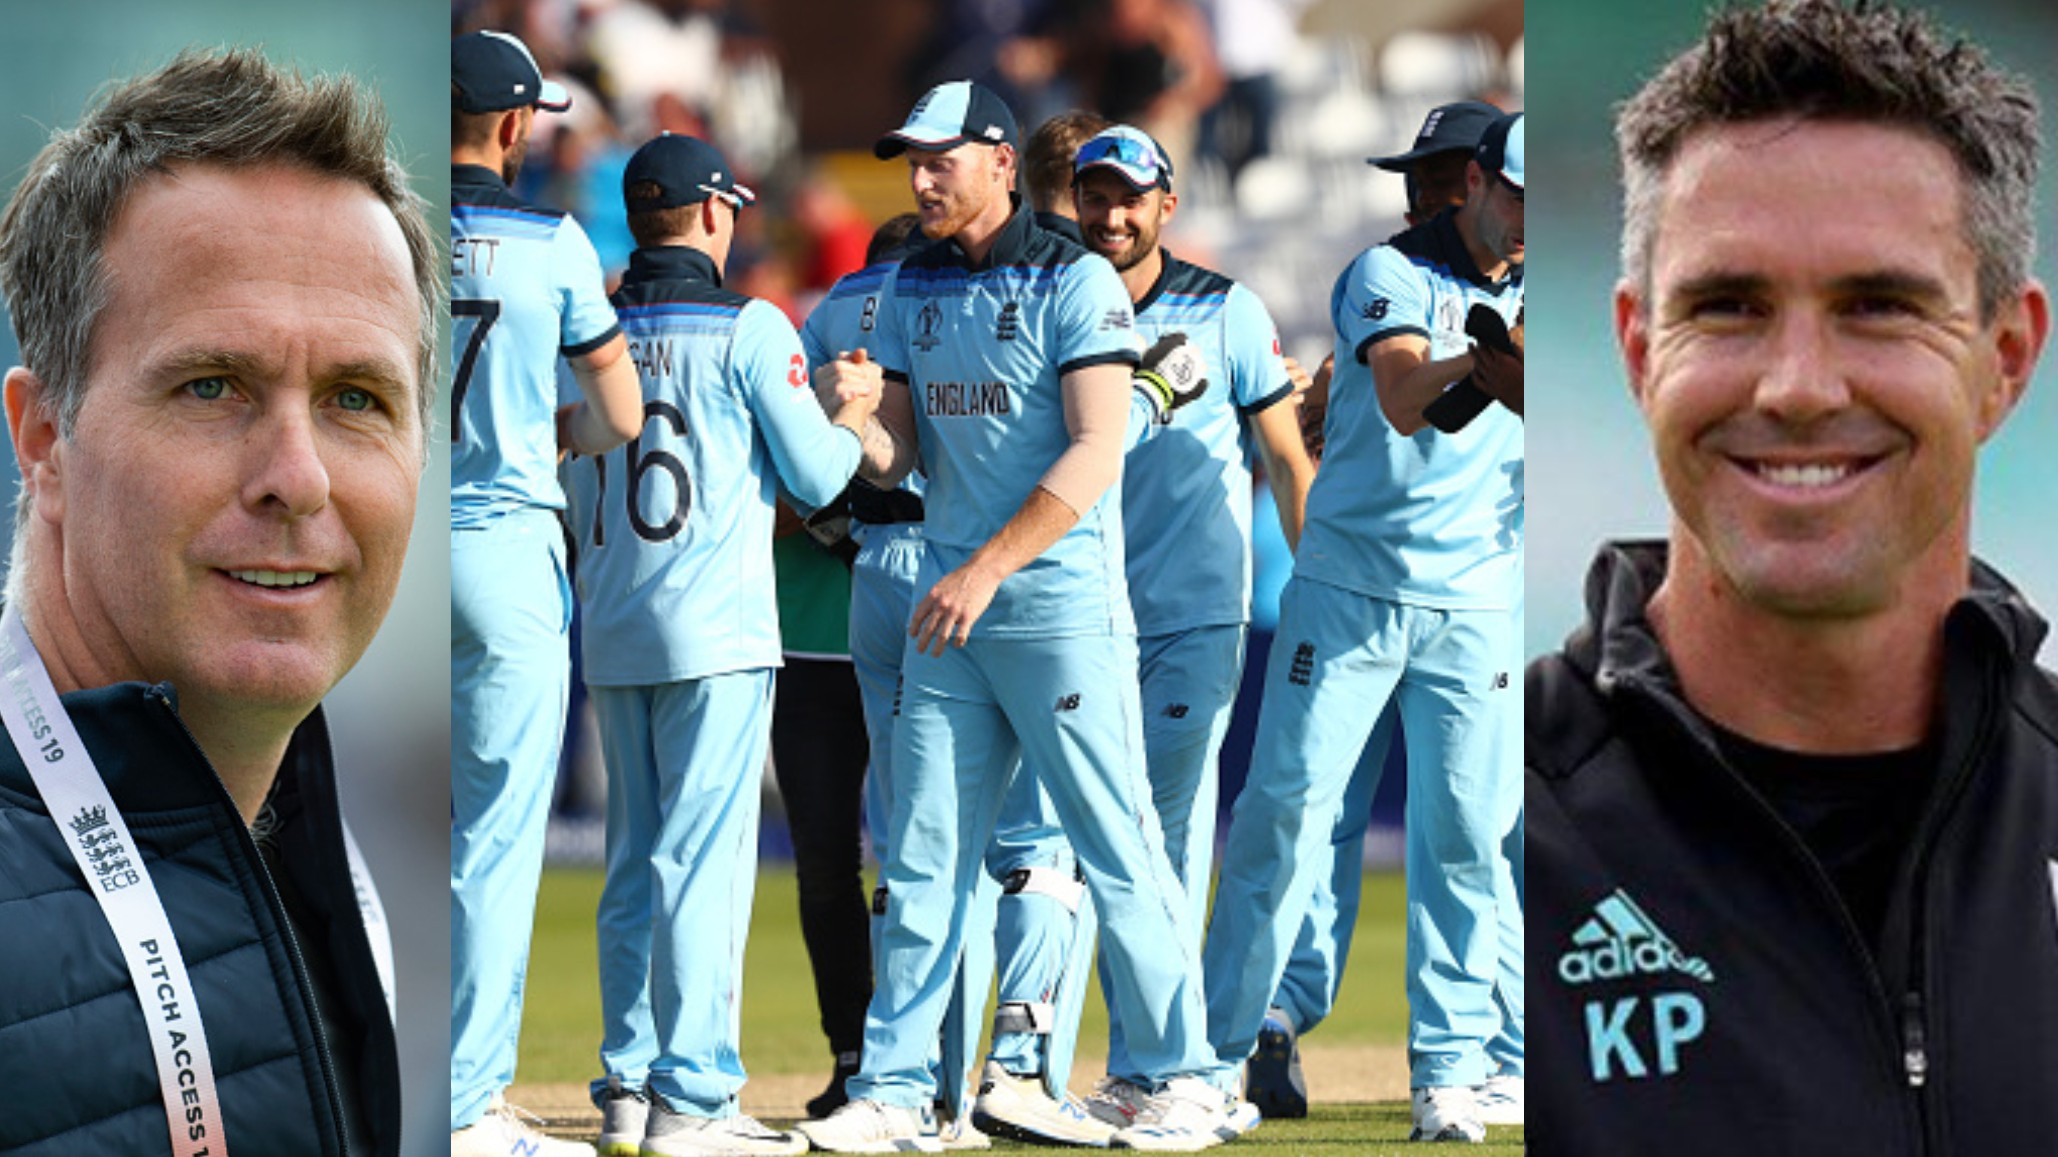 CWC 2019:Cricket Fraternity rejoices as England makes it into semis after beating New Zealand by 119 runs